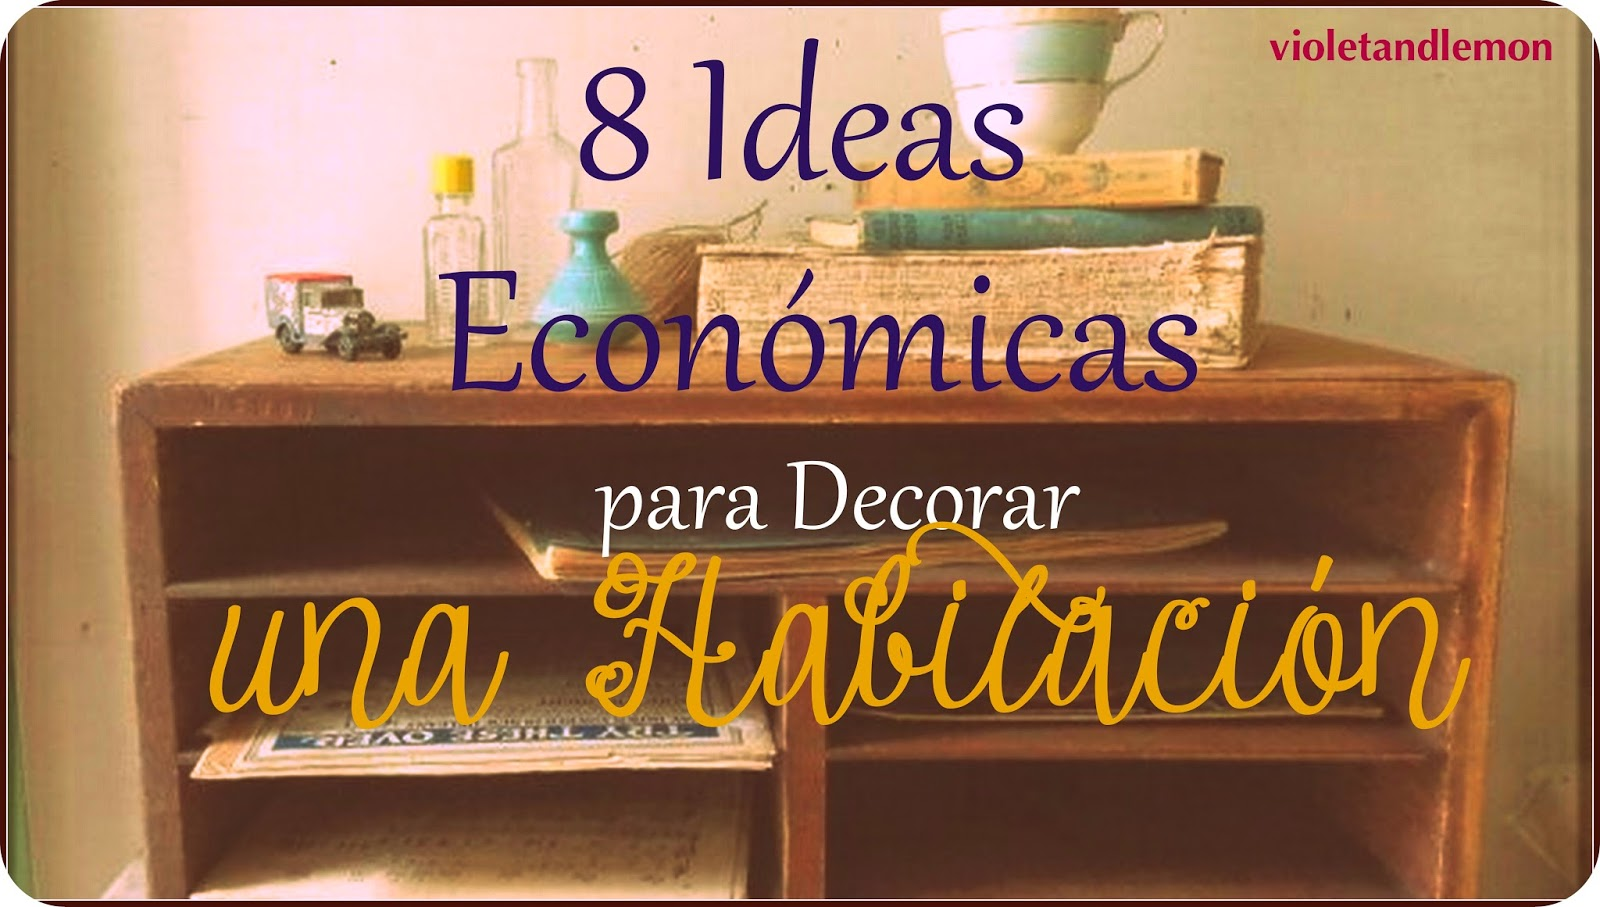 Violeta y lim n 8 ideas econ micas para decorar una for Decoracion ideas y consejos